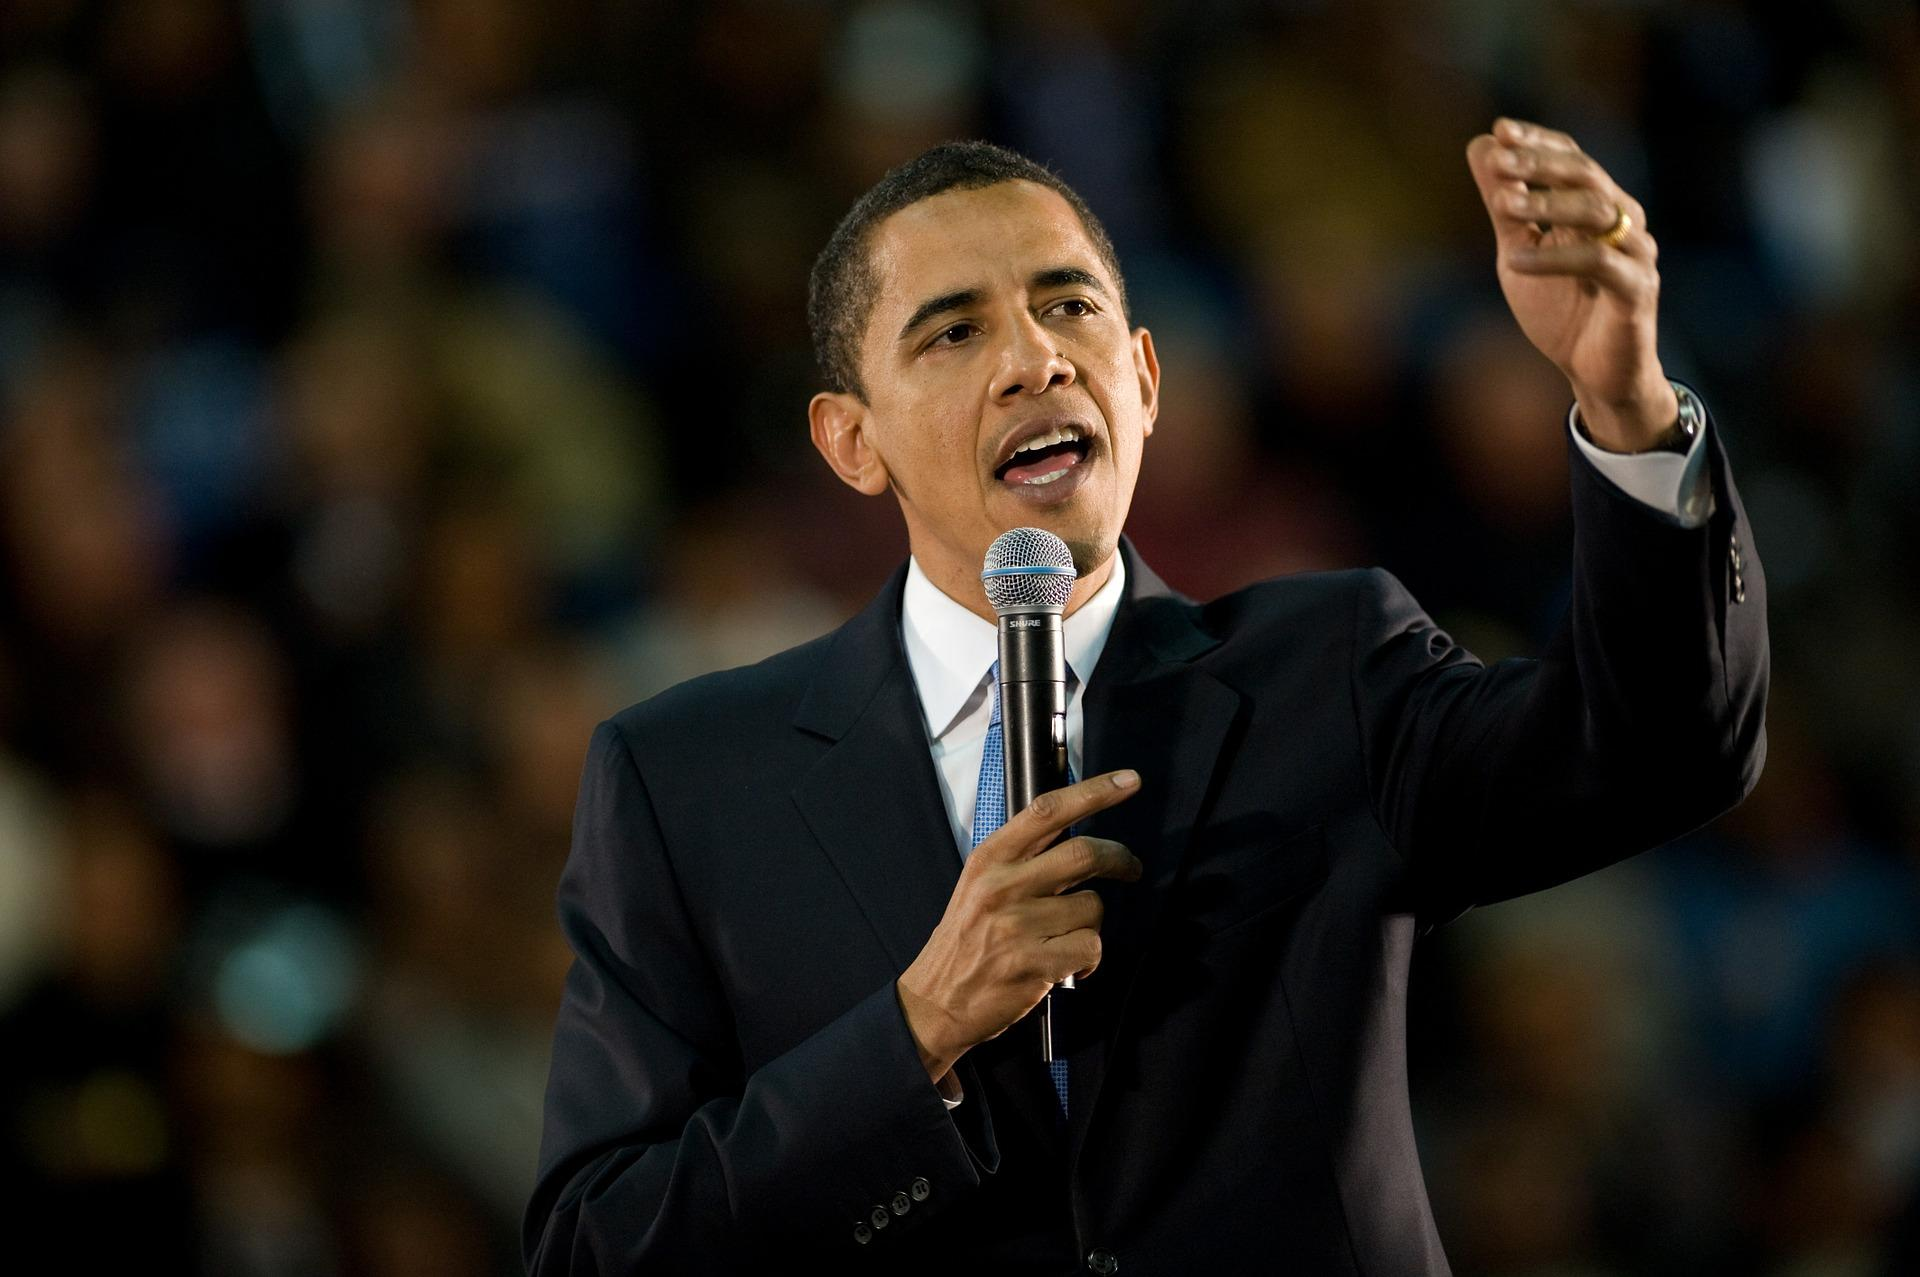 Obama's visit to campus brings parking lot and lane closures on Thursday.